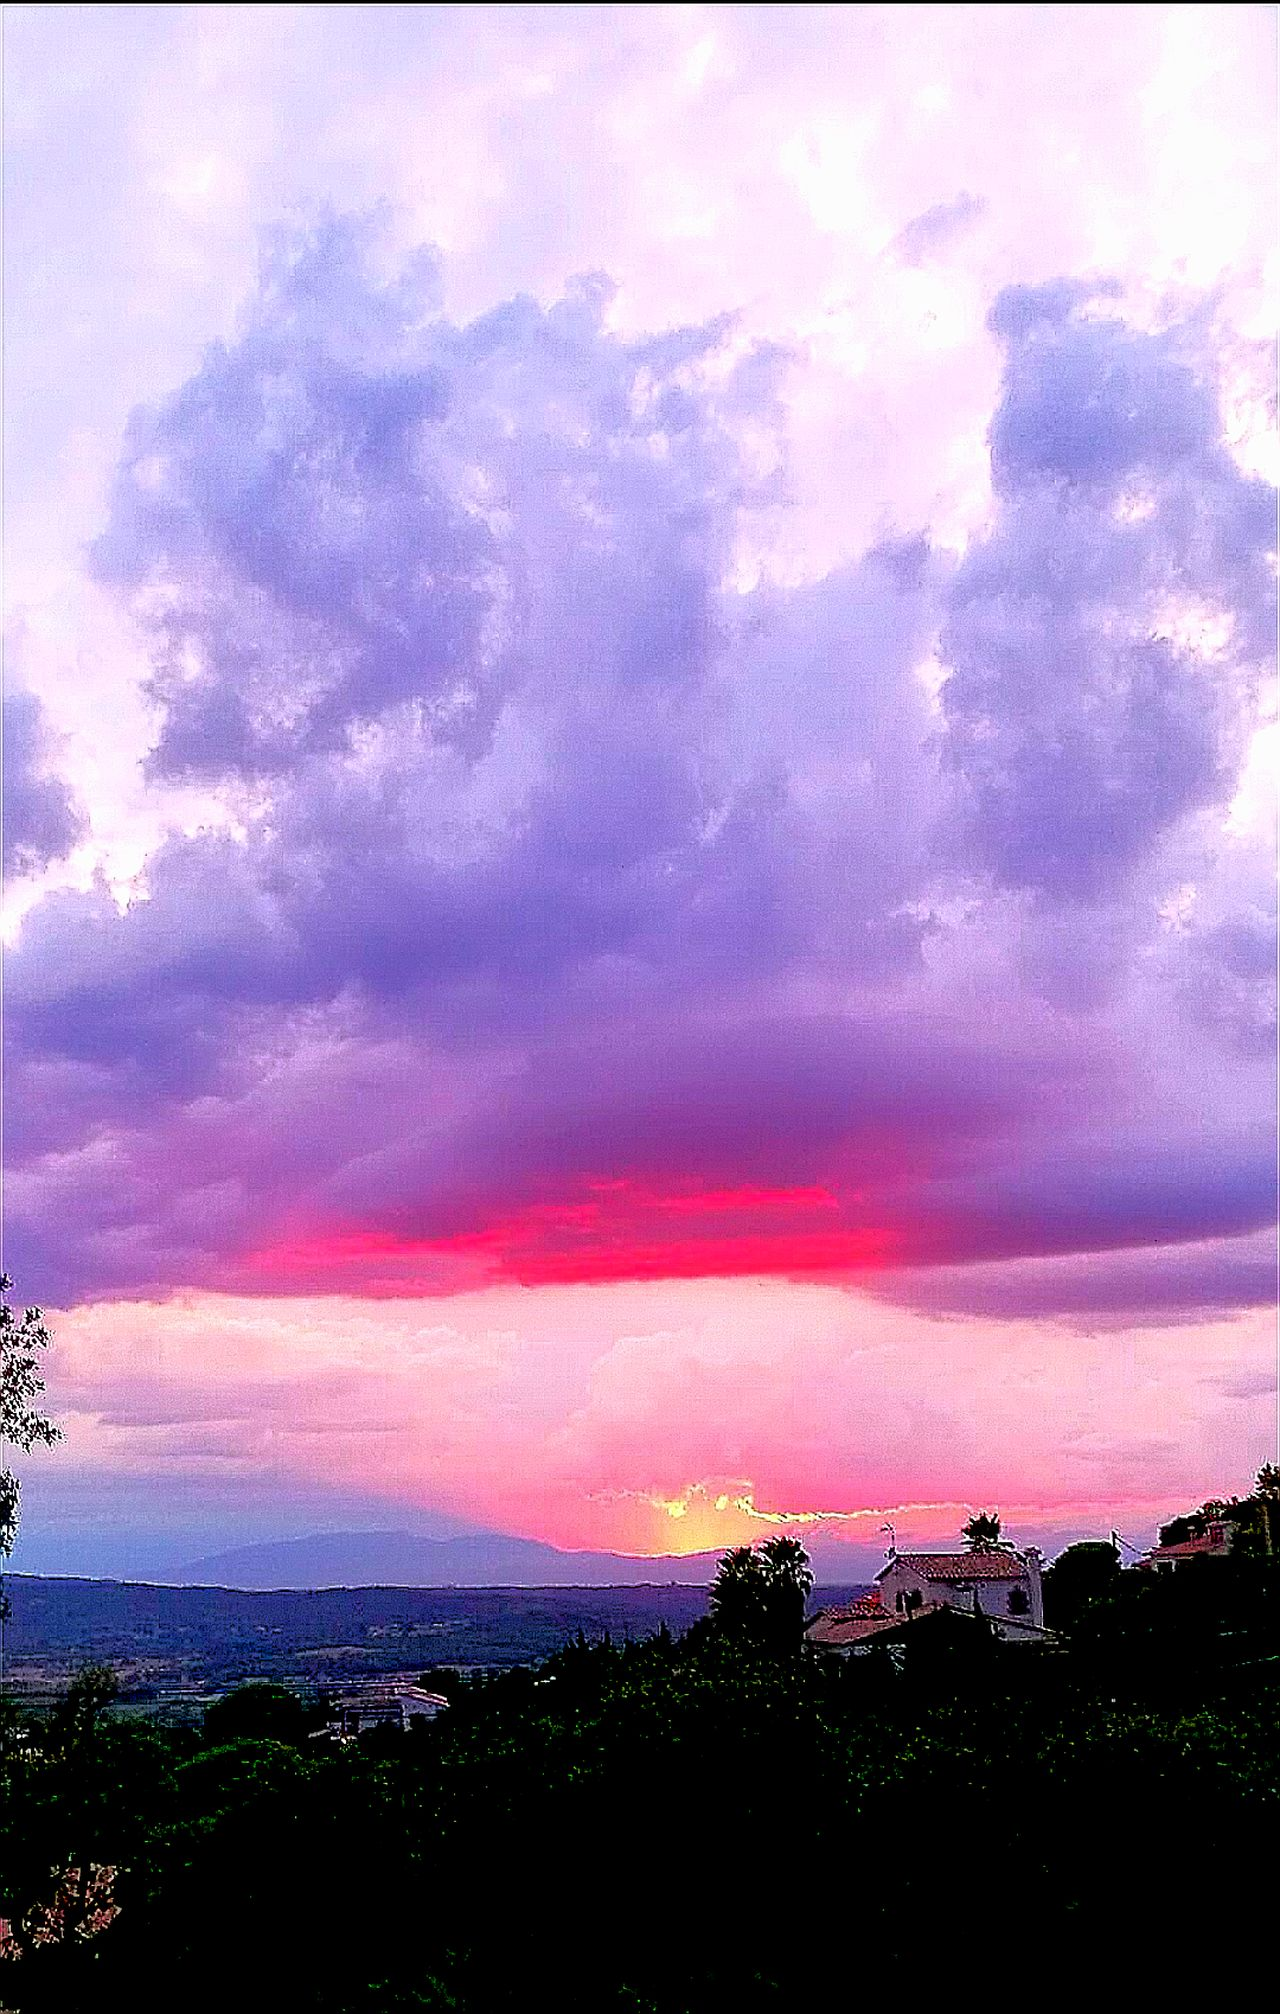 Spain🇪🇸 Horizon Pink Violet Home Purple Sunset Sky Pink Color Beauty In Nature Romantic Sky Night Nature Outdoors Tranquility Nature